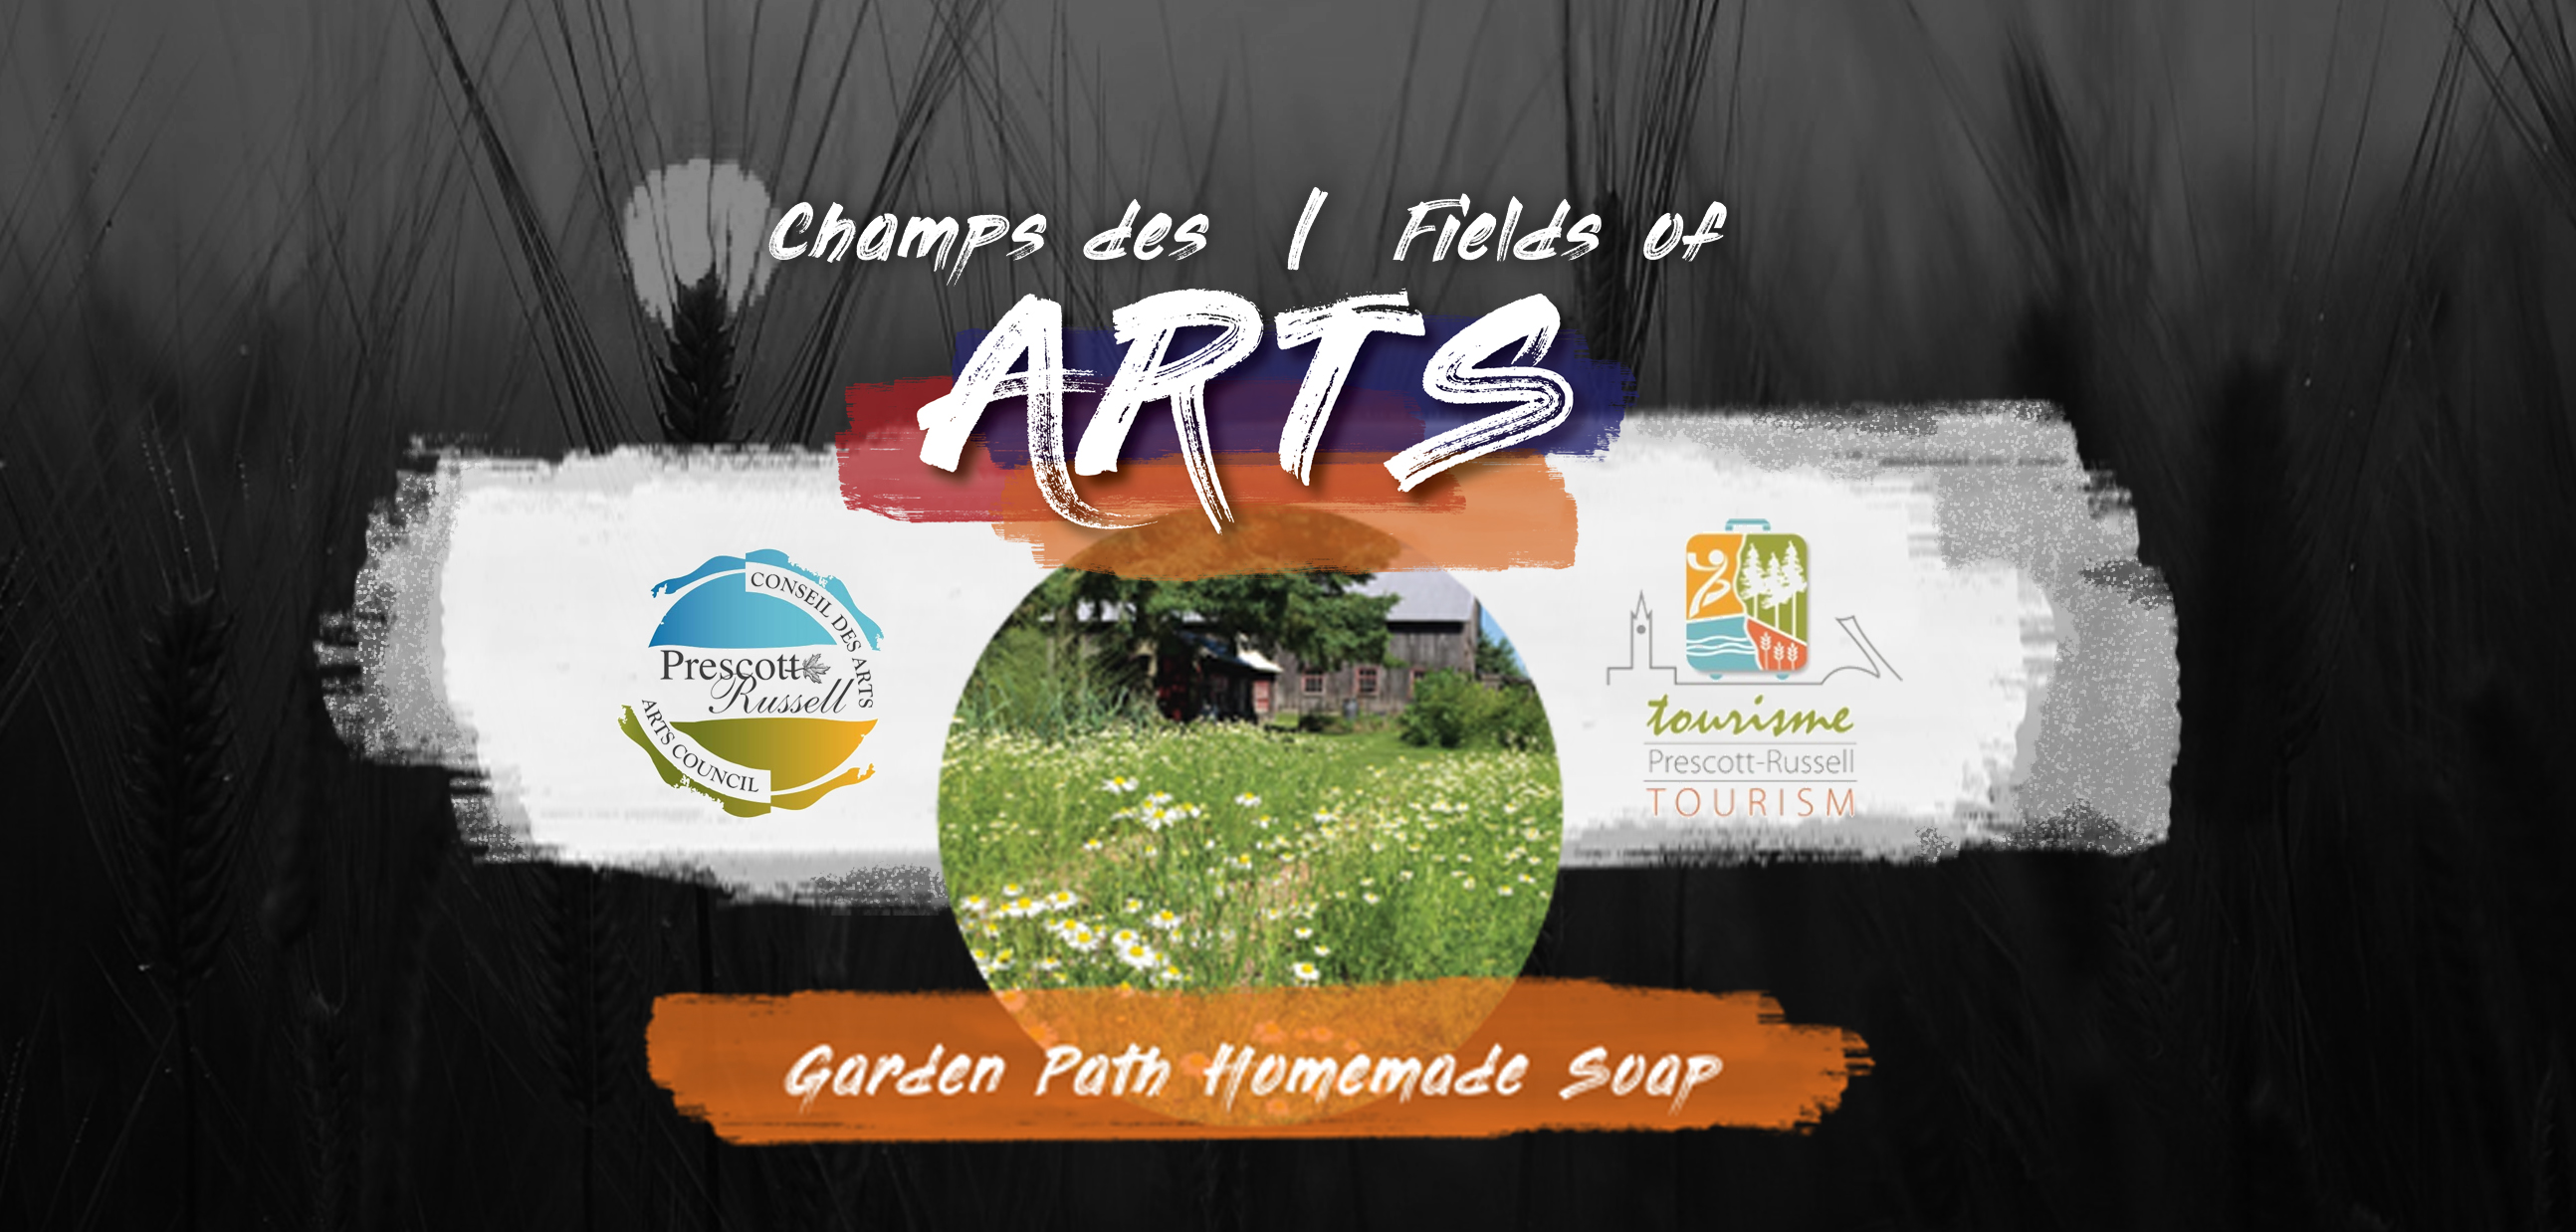 Field of Arts GardenPath